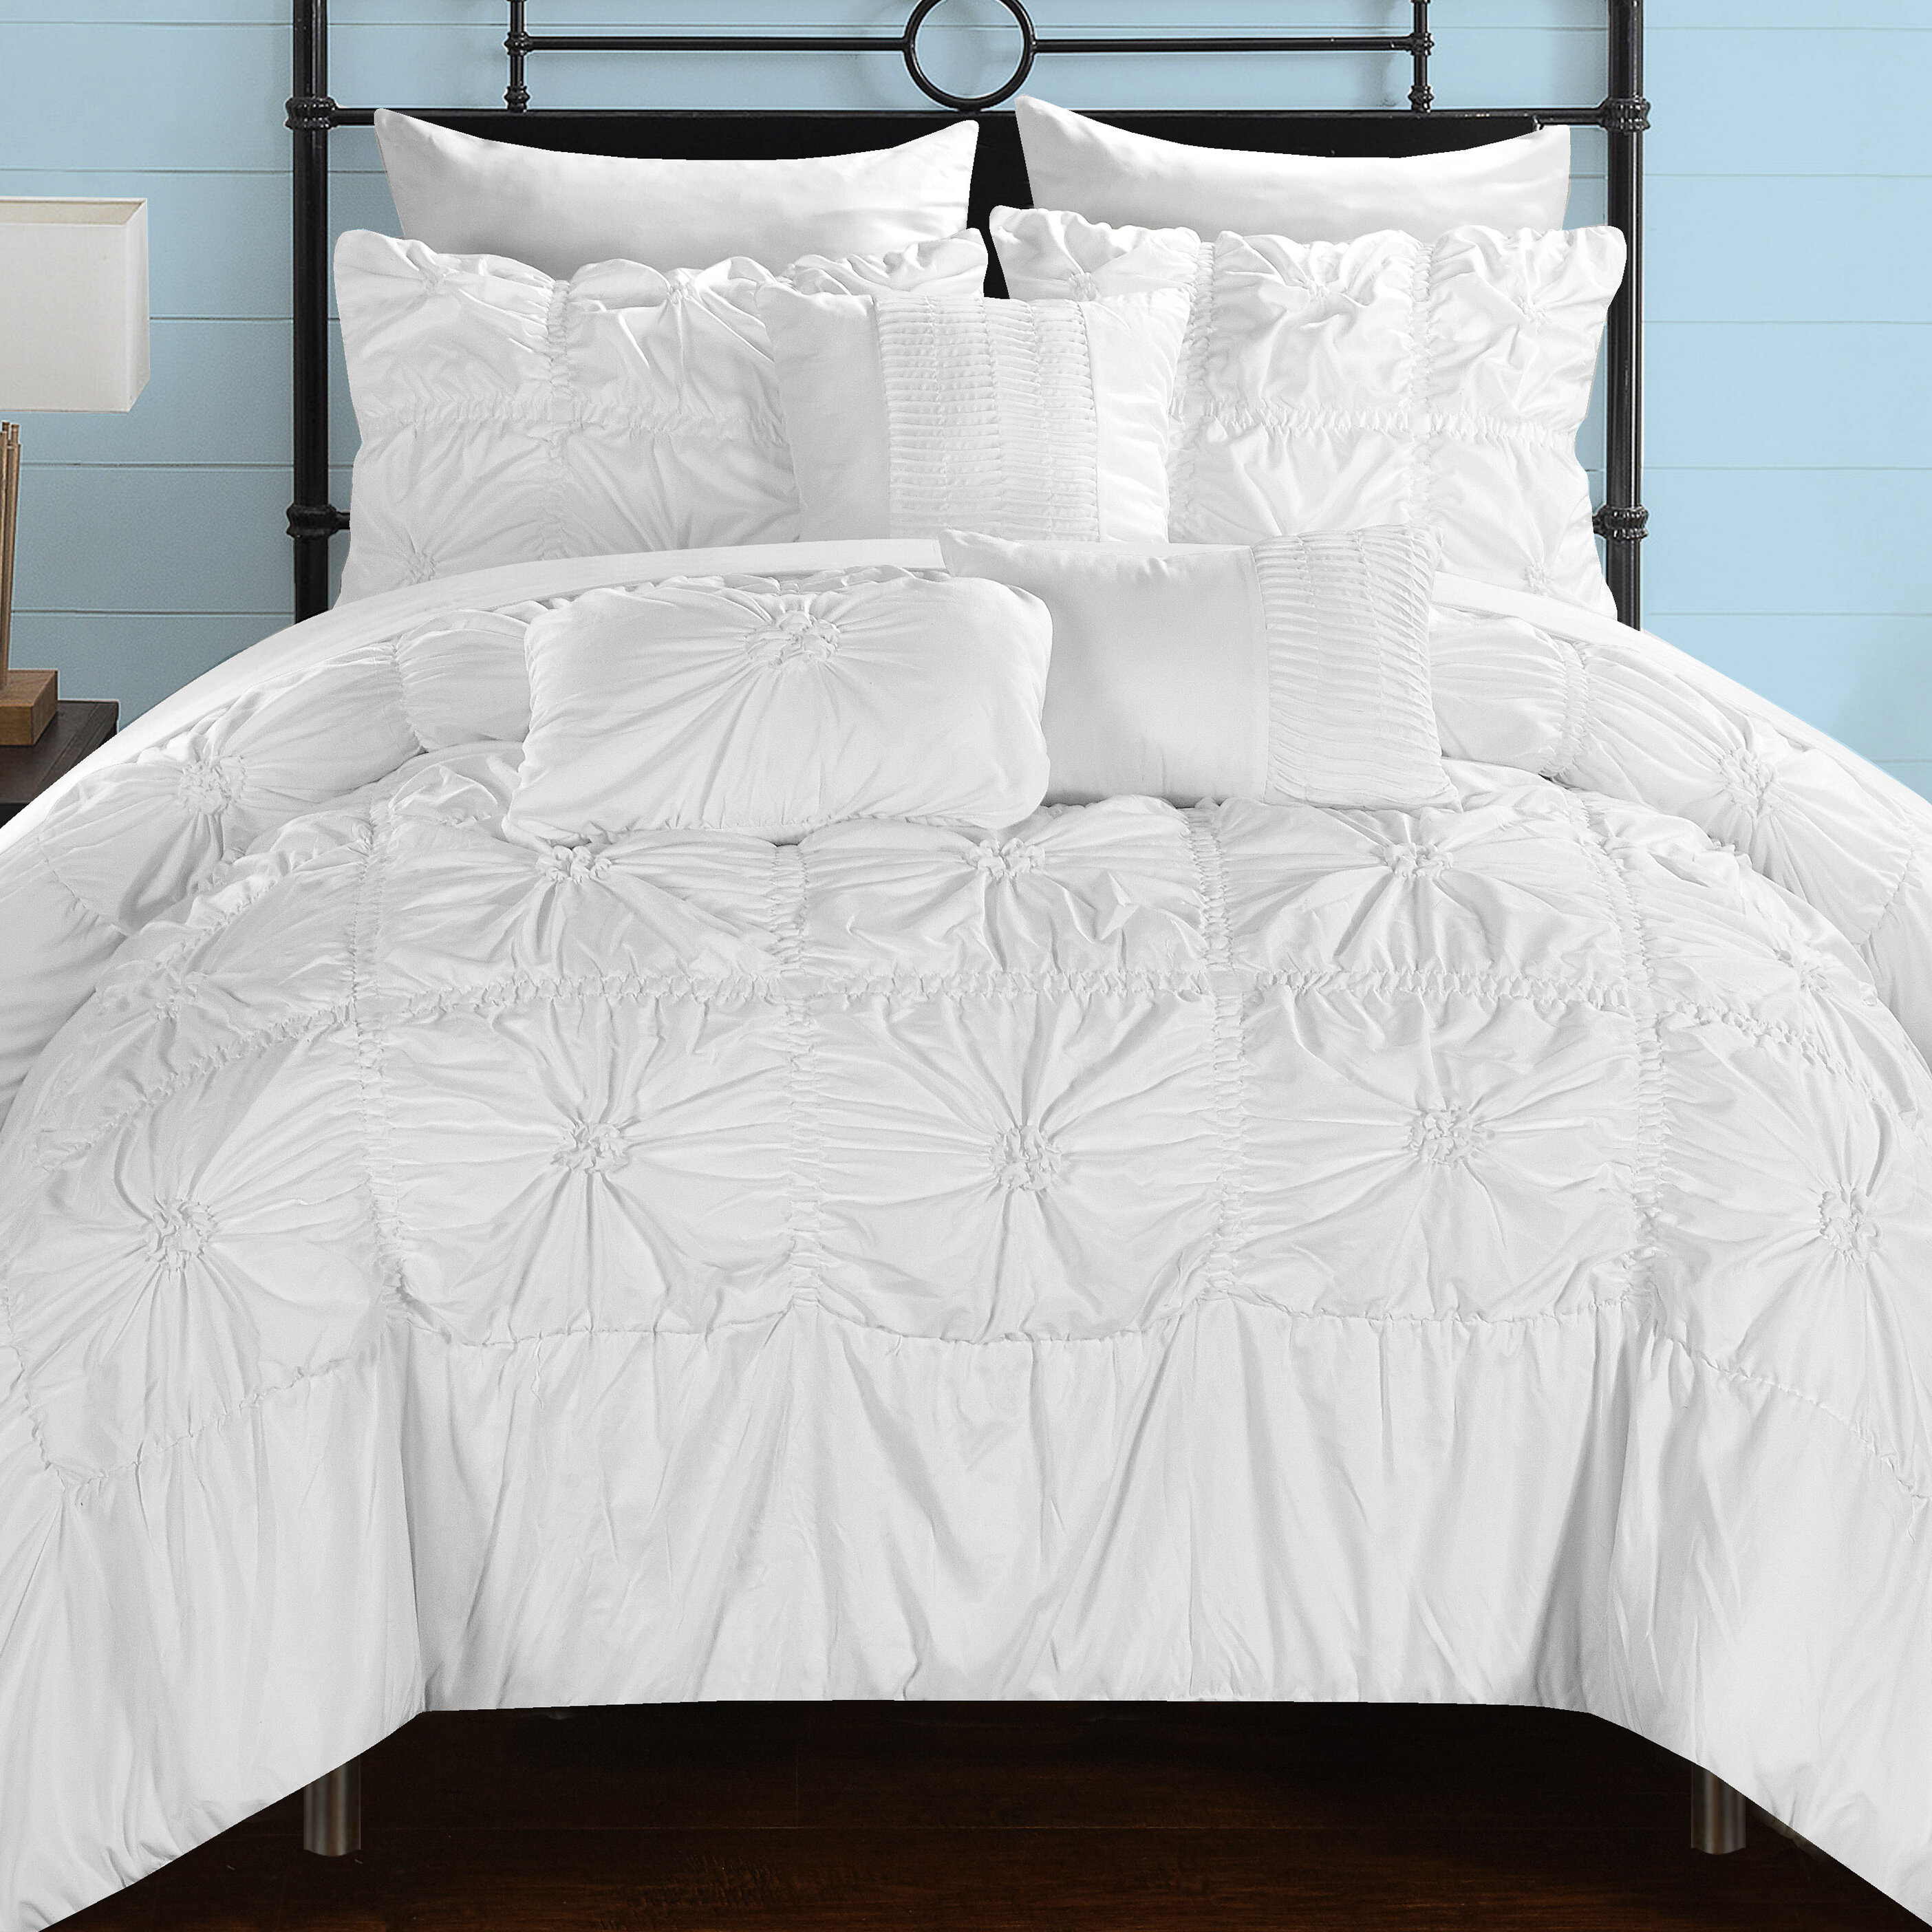 Chic Home Springfield Comforter Set & Reviews | Wayfair